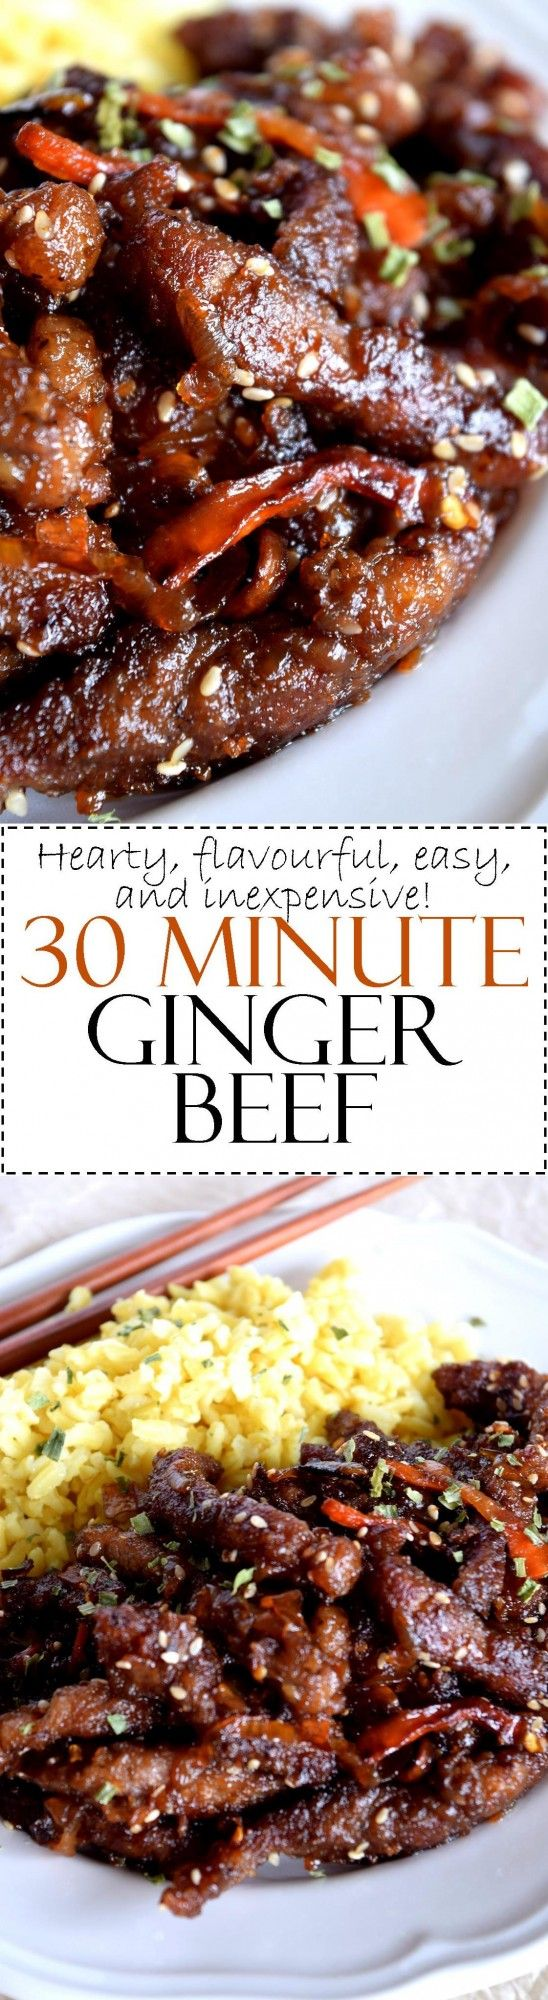 Tenderized cuts of beef, fried until crispy, and coated in a garlic and ginger sauce – 30 Minute Ginger Beef is an inexpensive dinner the whole family will love! 30 Minute Ginger Beef – I could eat this every day…